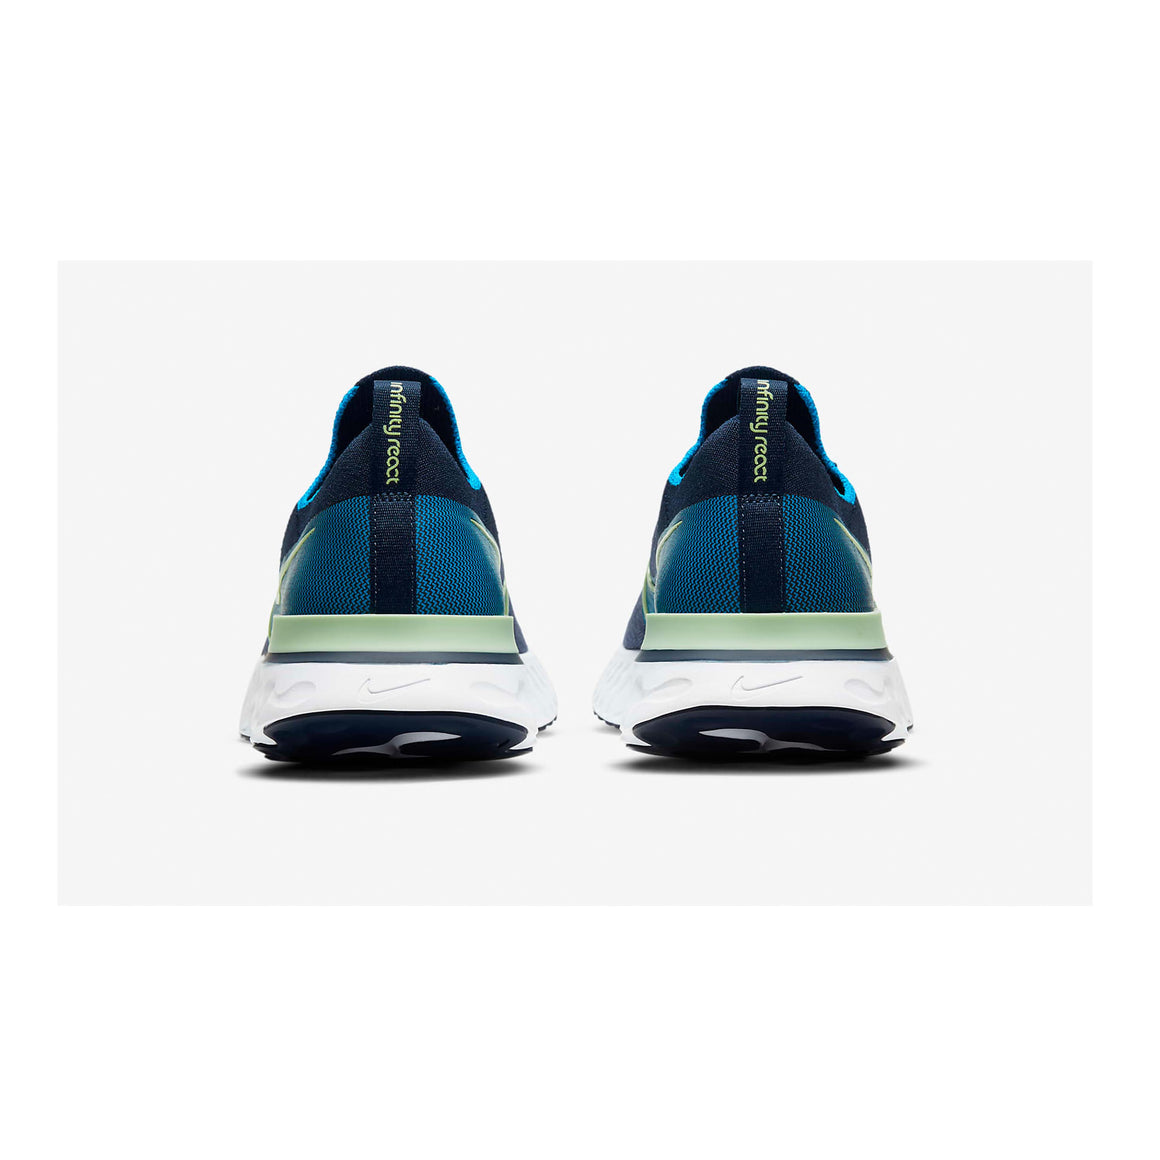 React Infinity Run Flyknit Running Shoes for Men in College Navy/Cucumber Calmblue